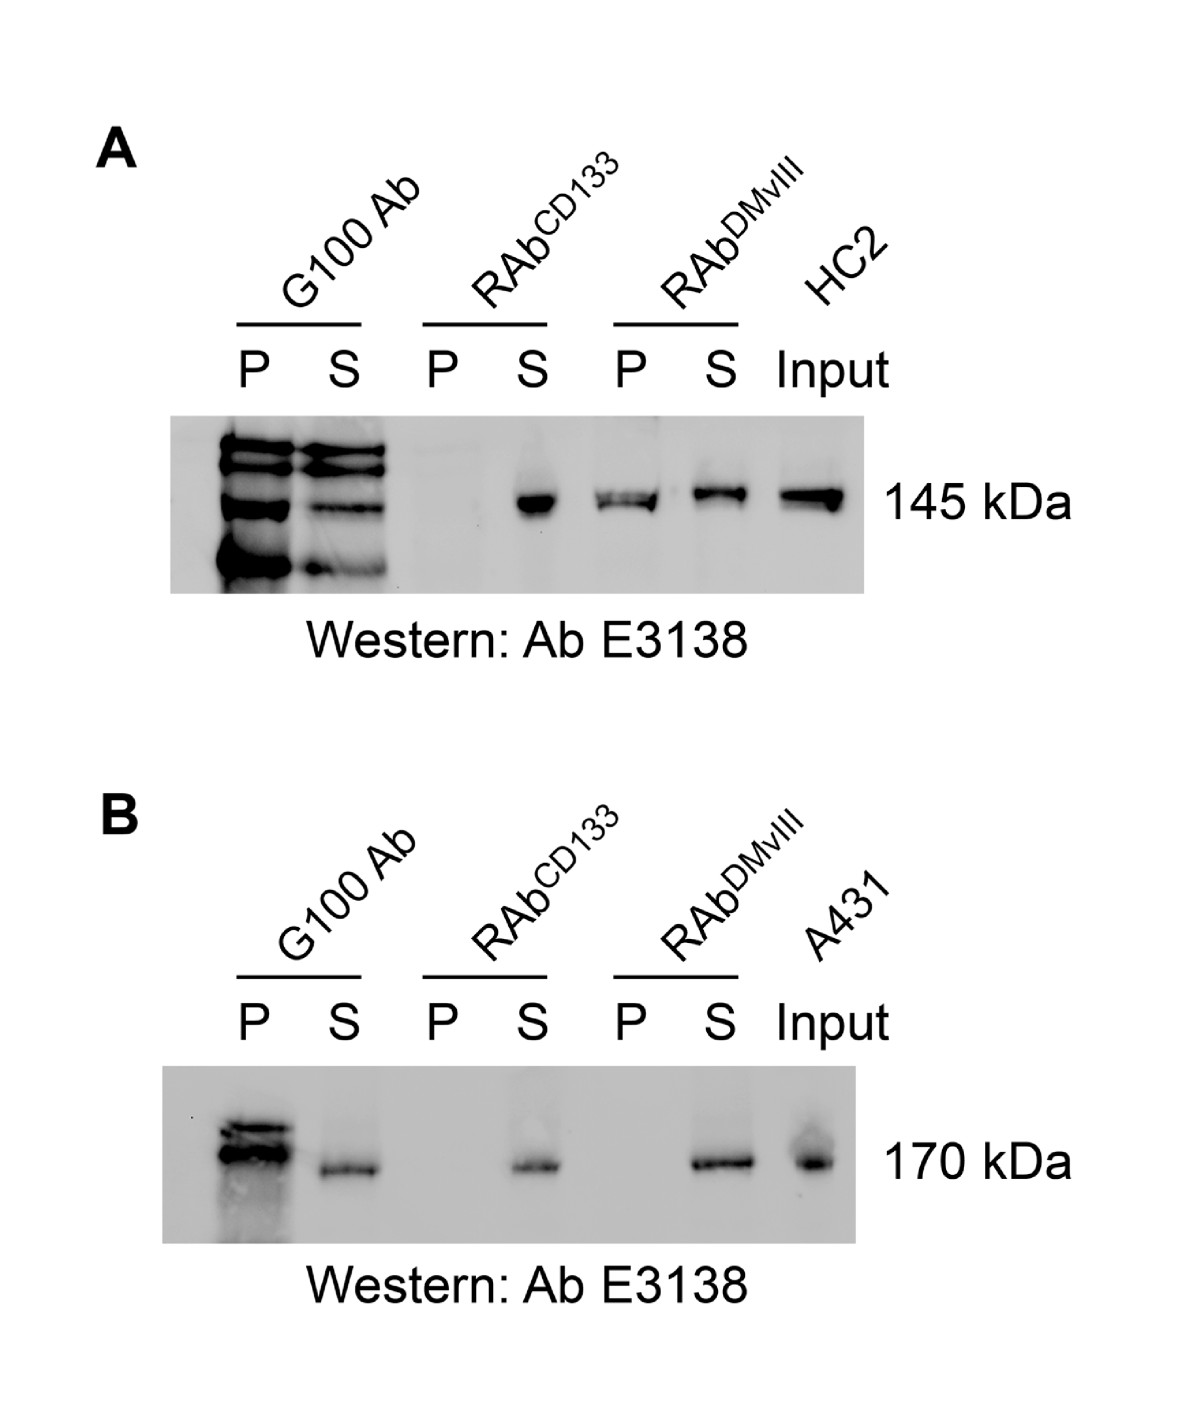 http://static-content.springer.com/image/art%3A10.1186%2F1472-6750-10-72/MediaObjects/12896_2010_Article_540_Fig4_HTML.jpg